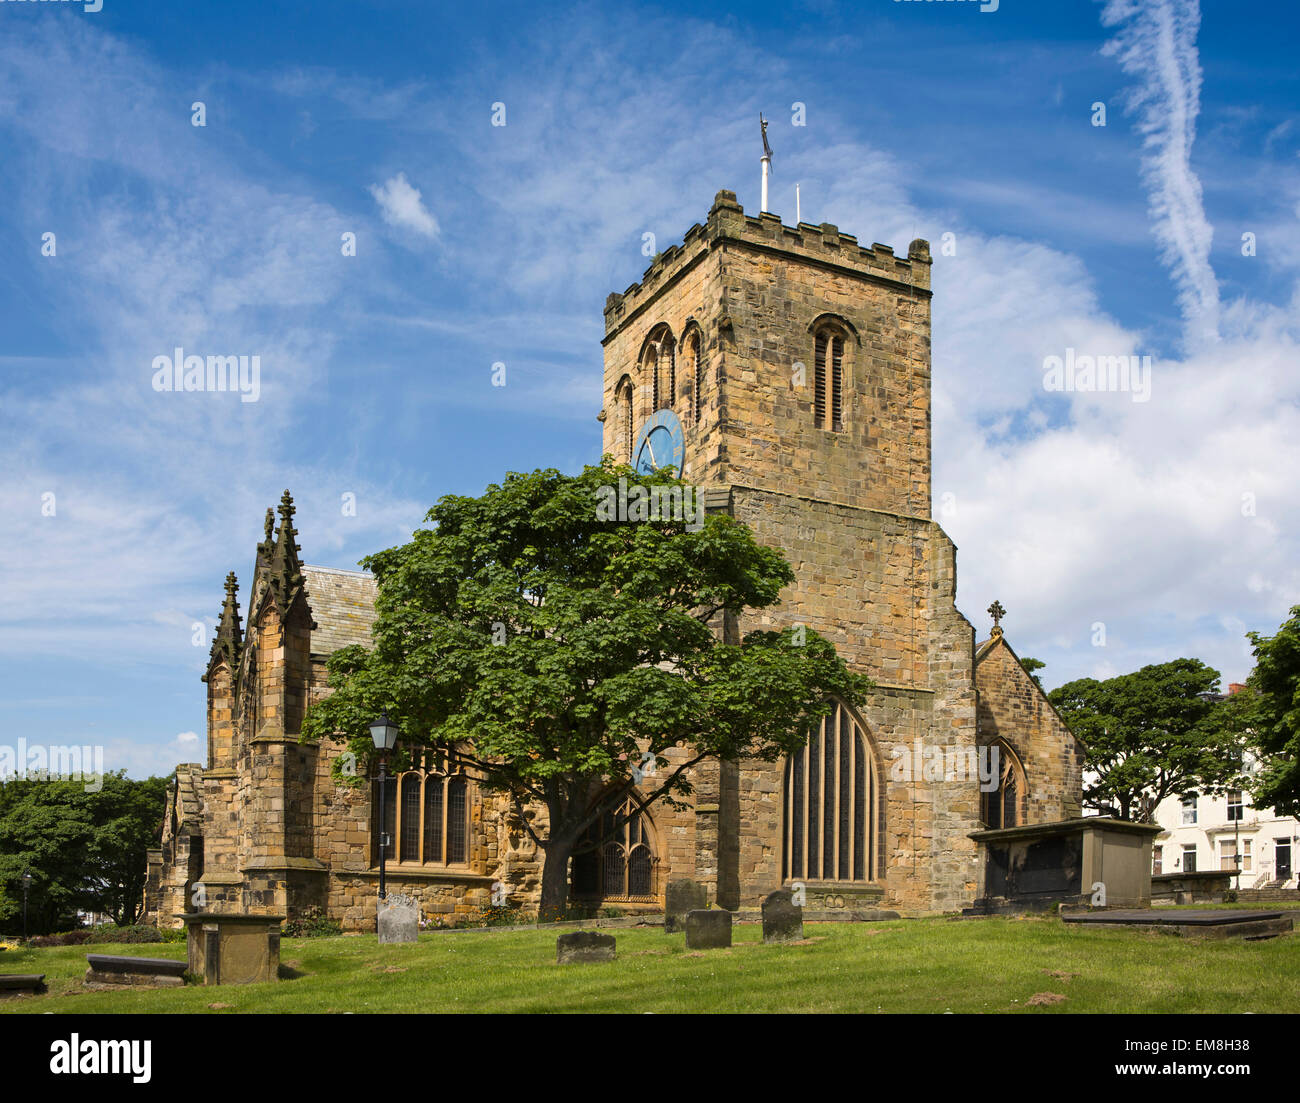 UK, England, Yorkshire, Scarborough, St Mary's Parish Church clock tower - Stock Image